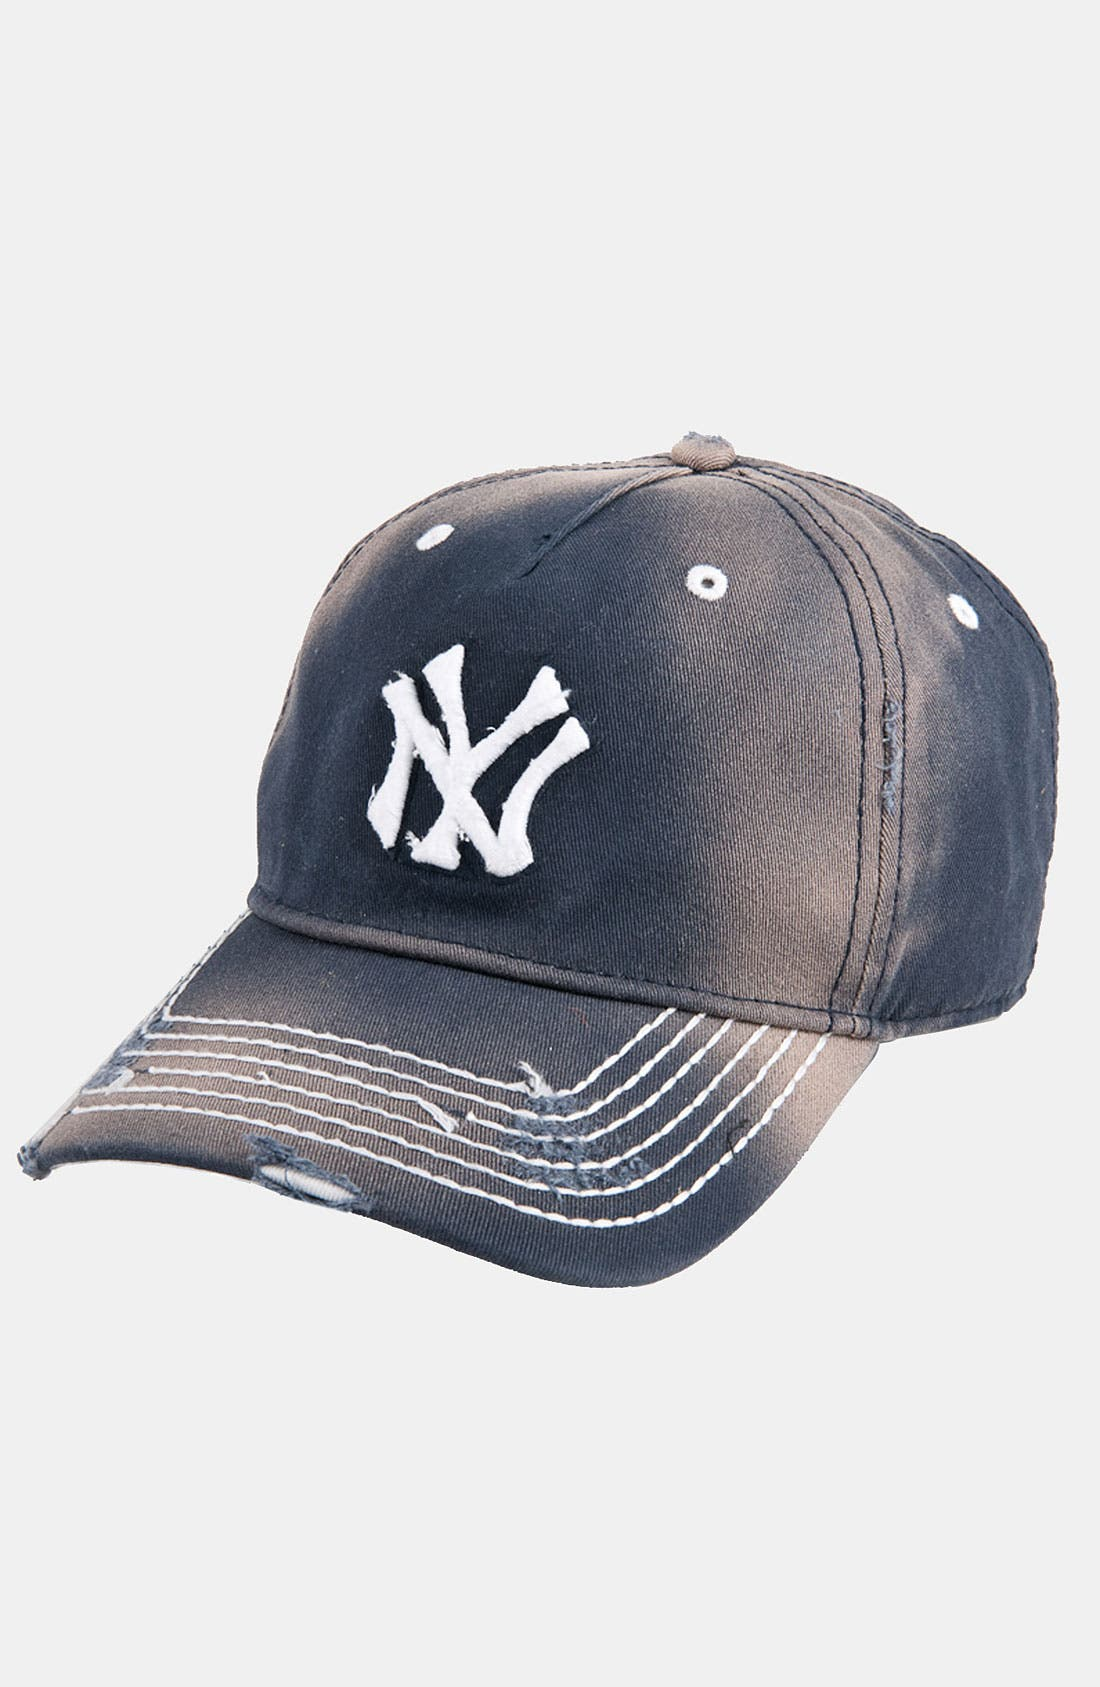 Main Image - American Needle 'New York Yankees' Distressed Cap